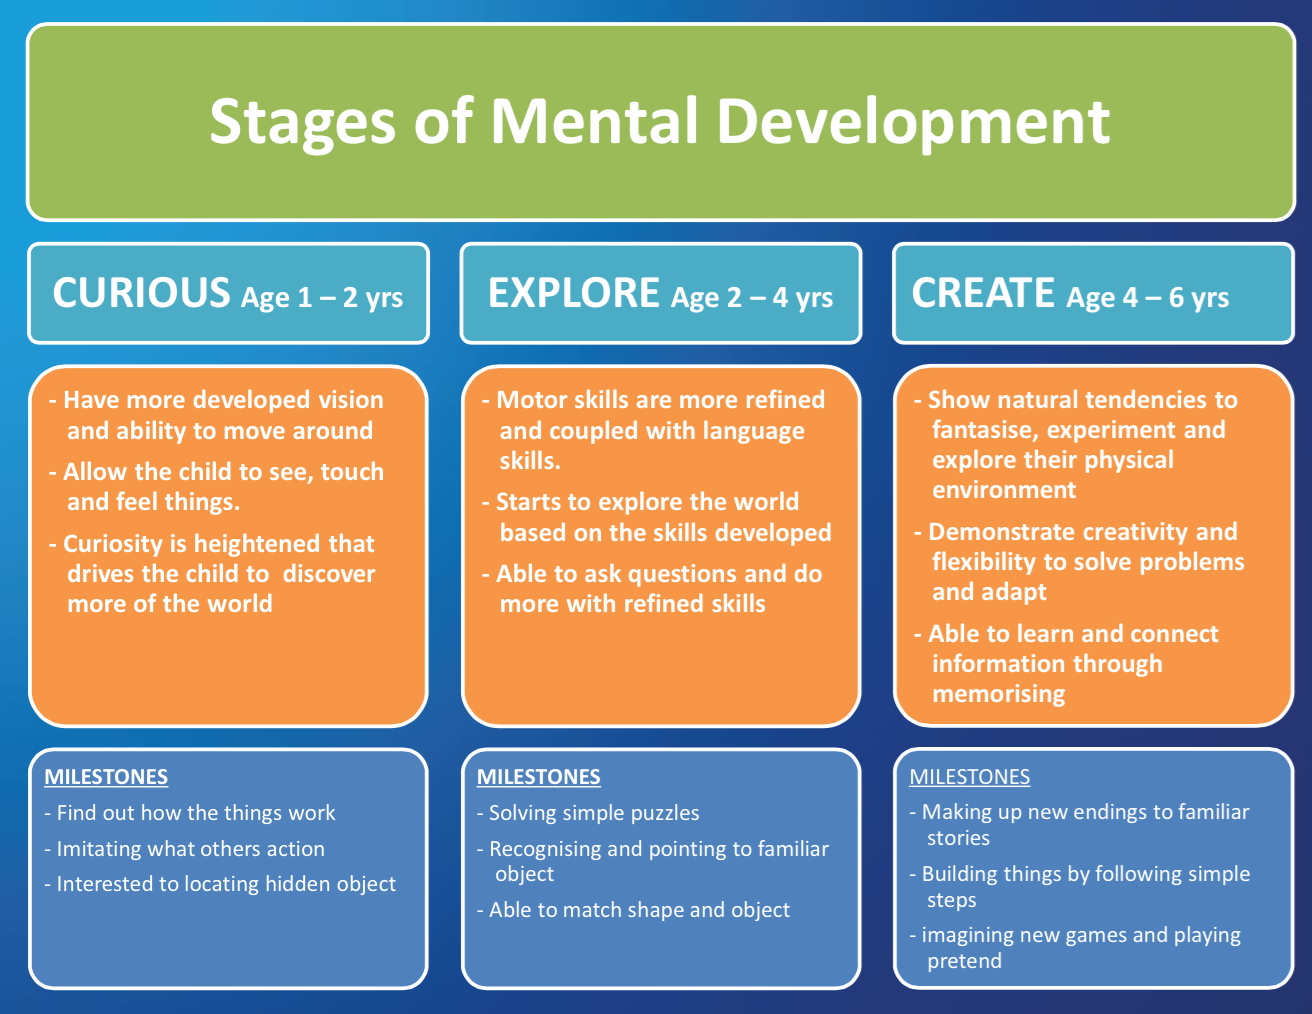 Stages of Mental Development